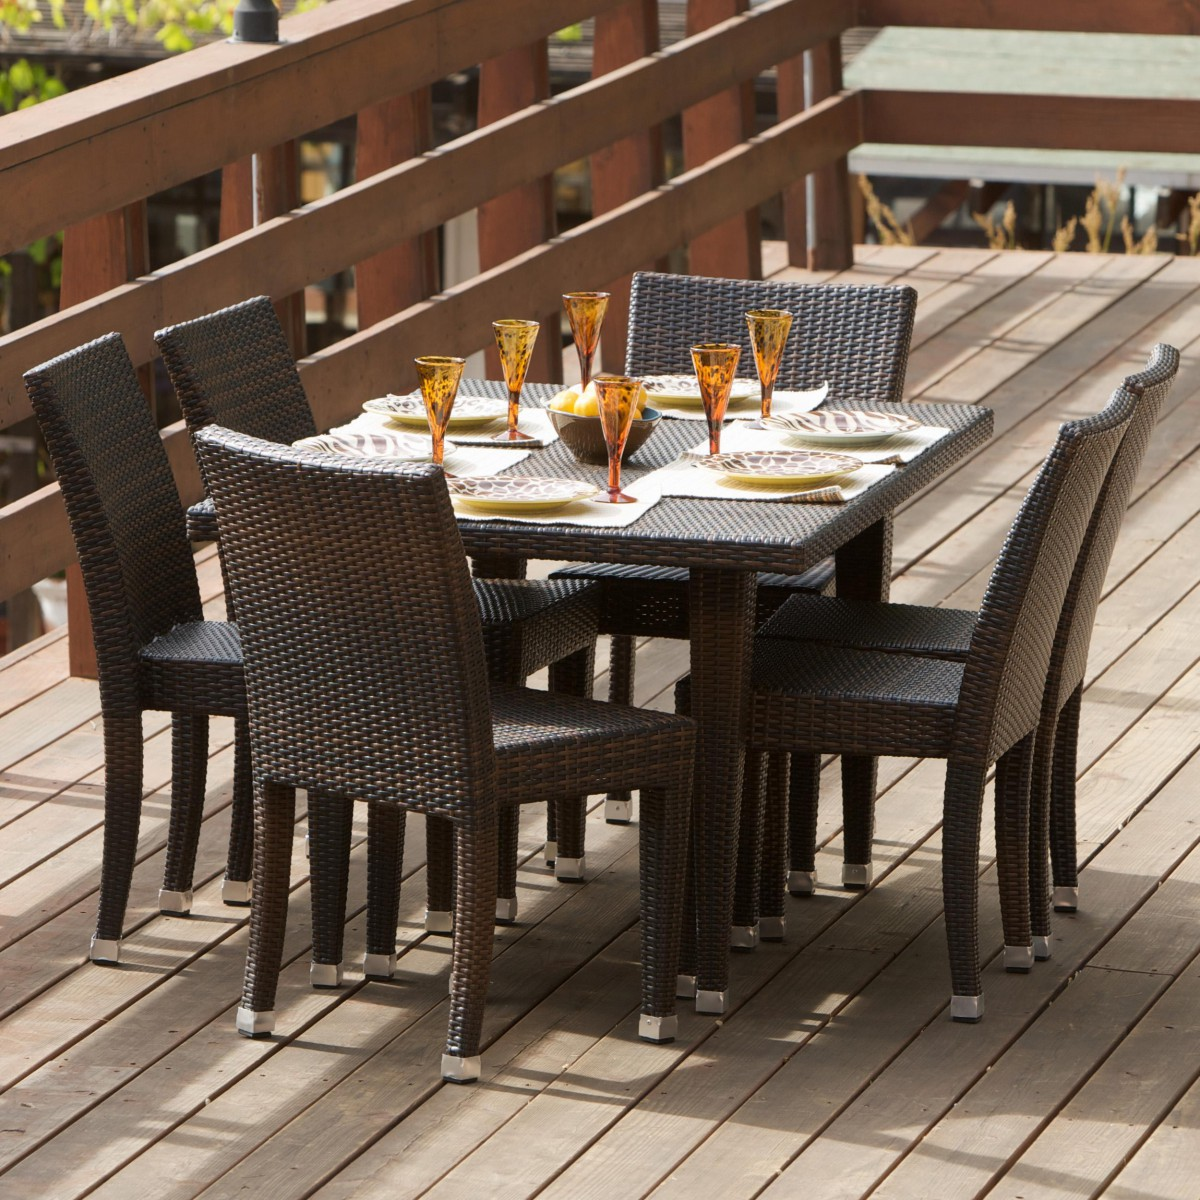 Permalink to Unique 30  Wicker Patio Furniture Sets